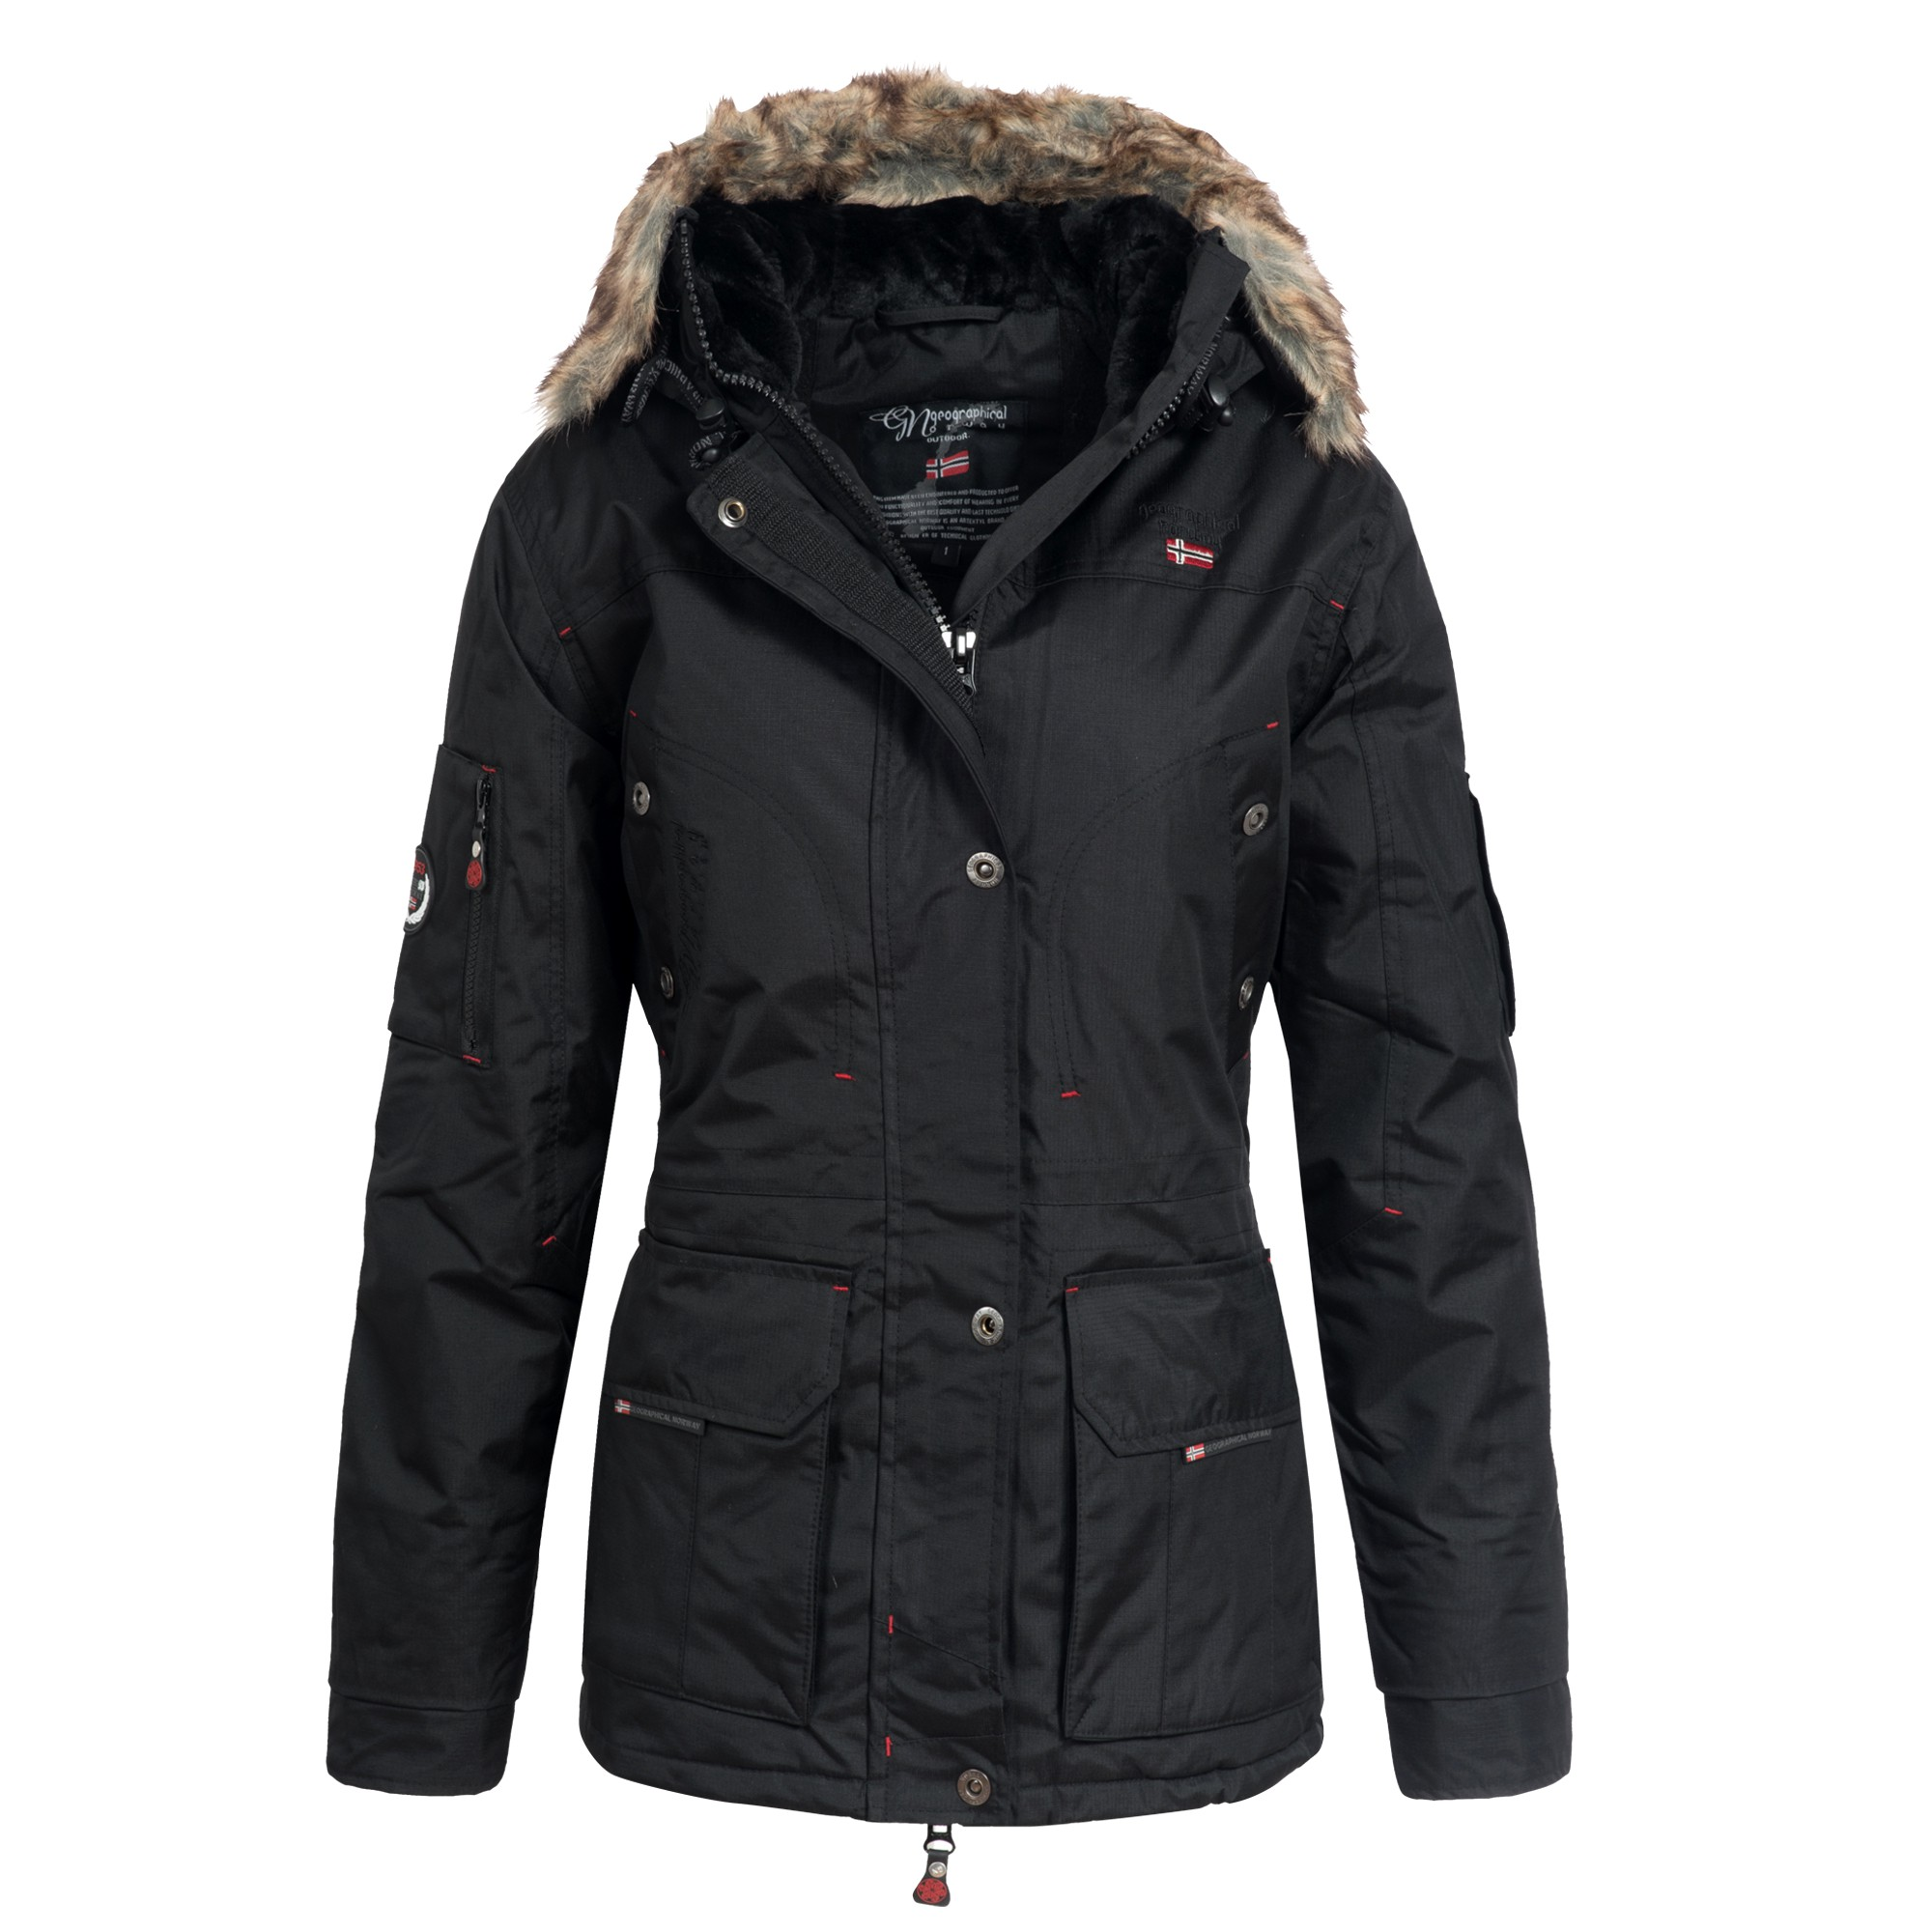 geographical norway alaska damen winterjacke jacke parka. Black Bedroom Furniture Sets. Home Design Ideas